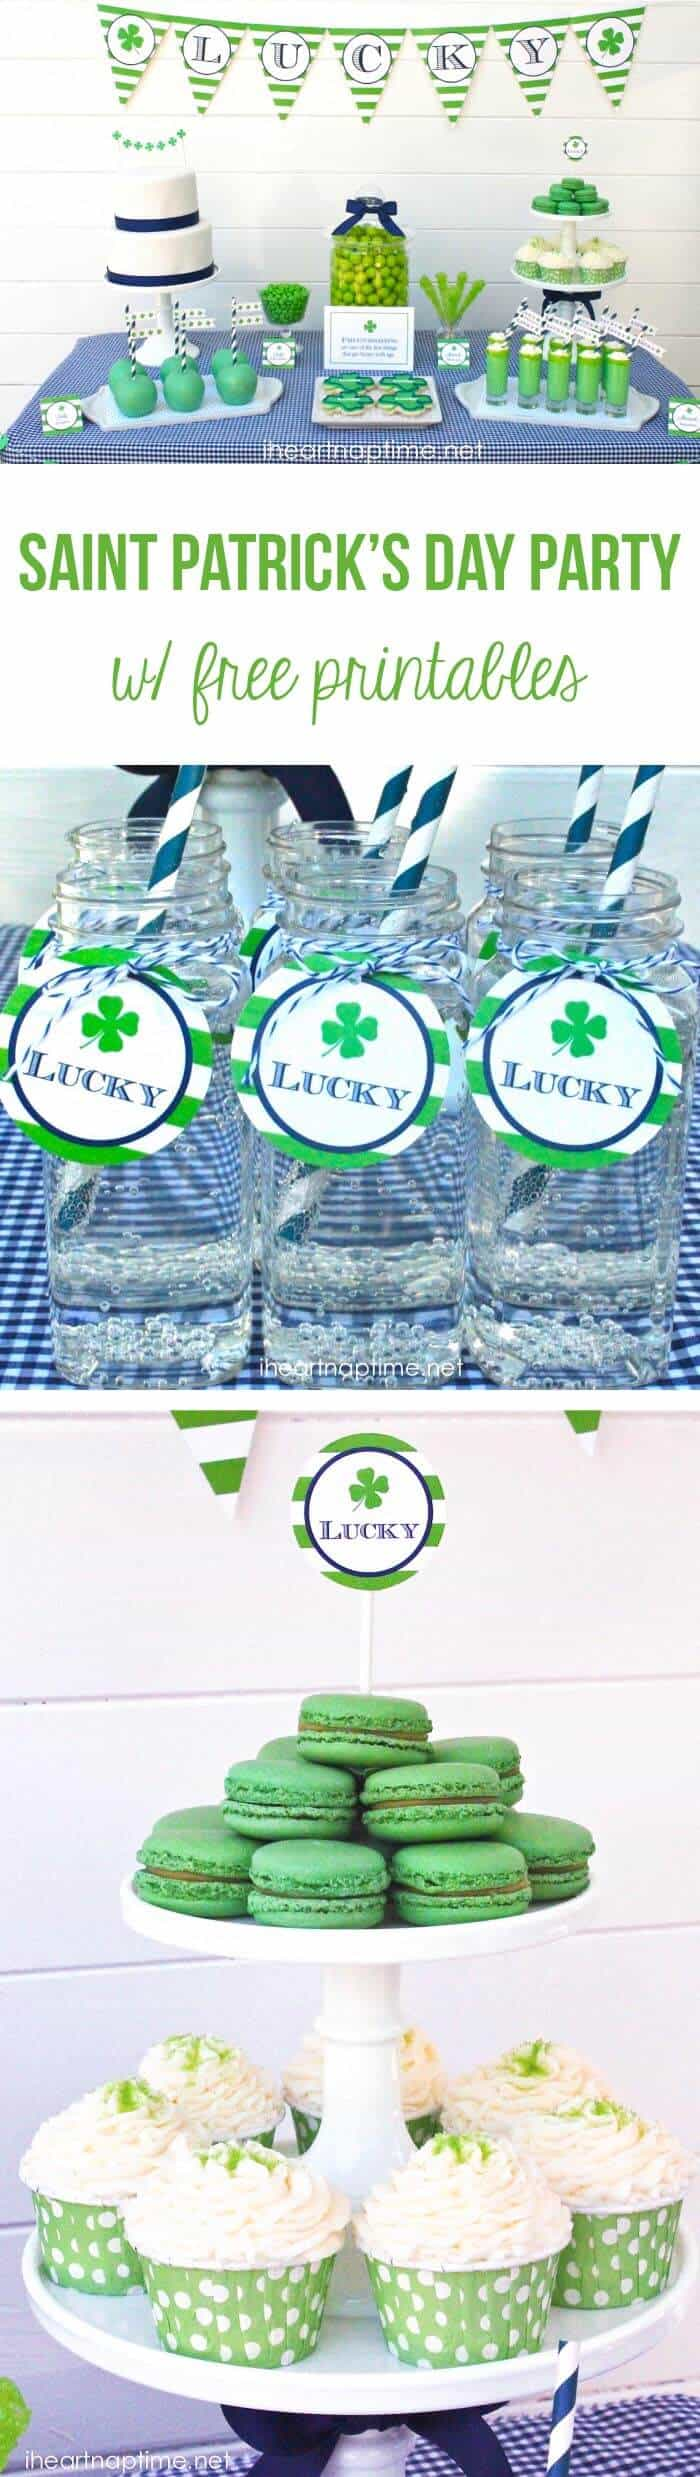 Saint Patrick's Day party ideas with FREE printables!